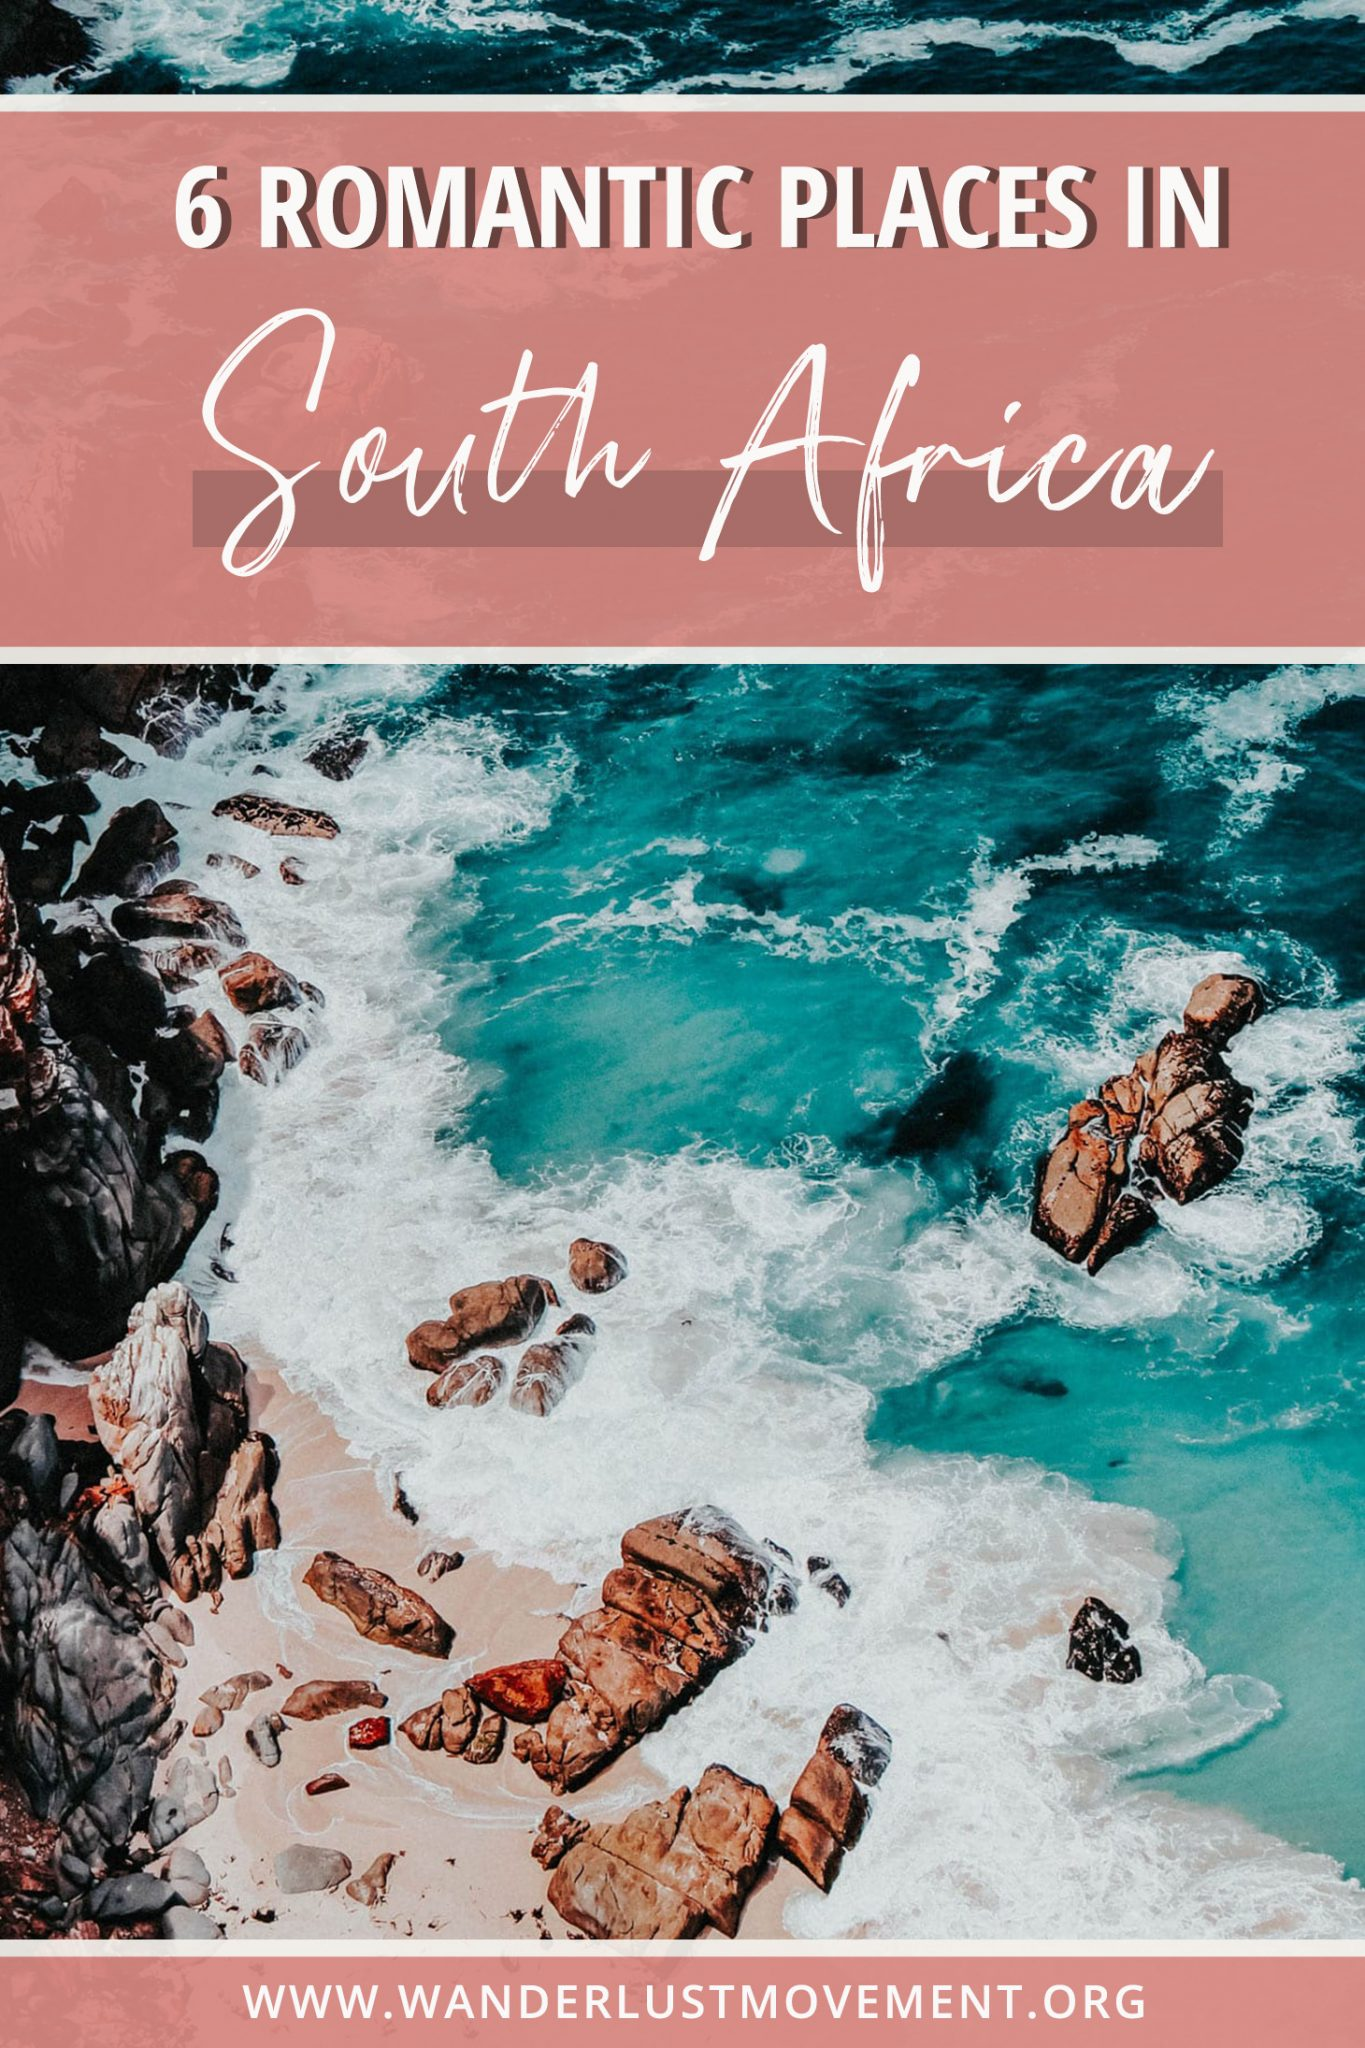 6 Romantic Places in South Africa for Adventurous Couples